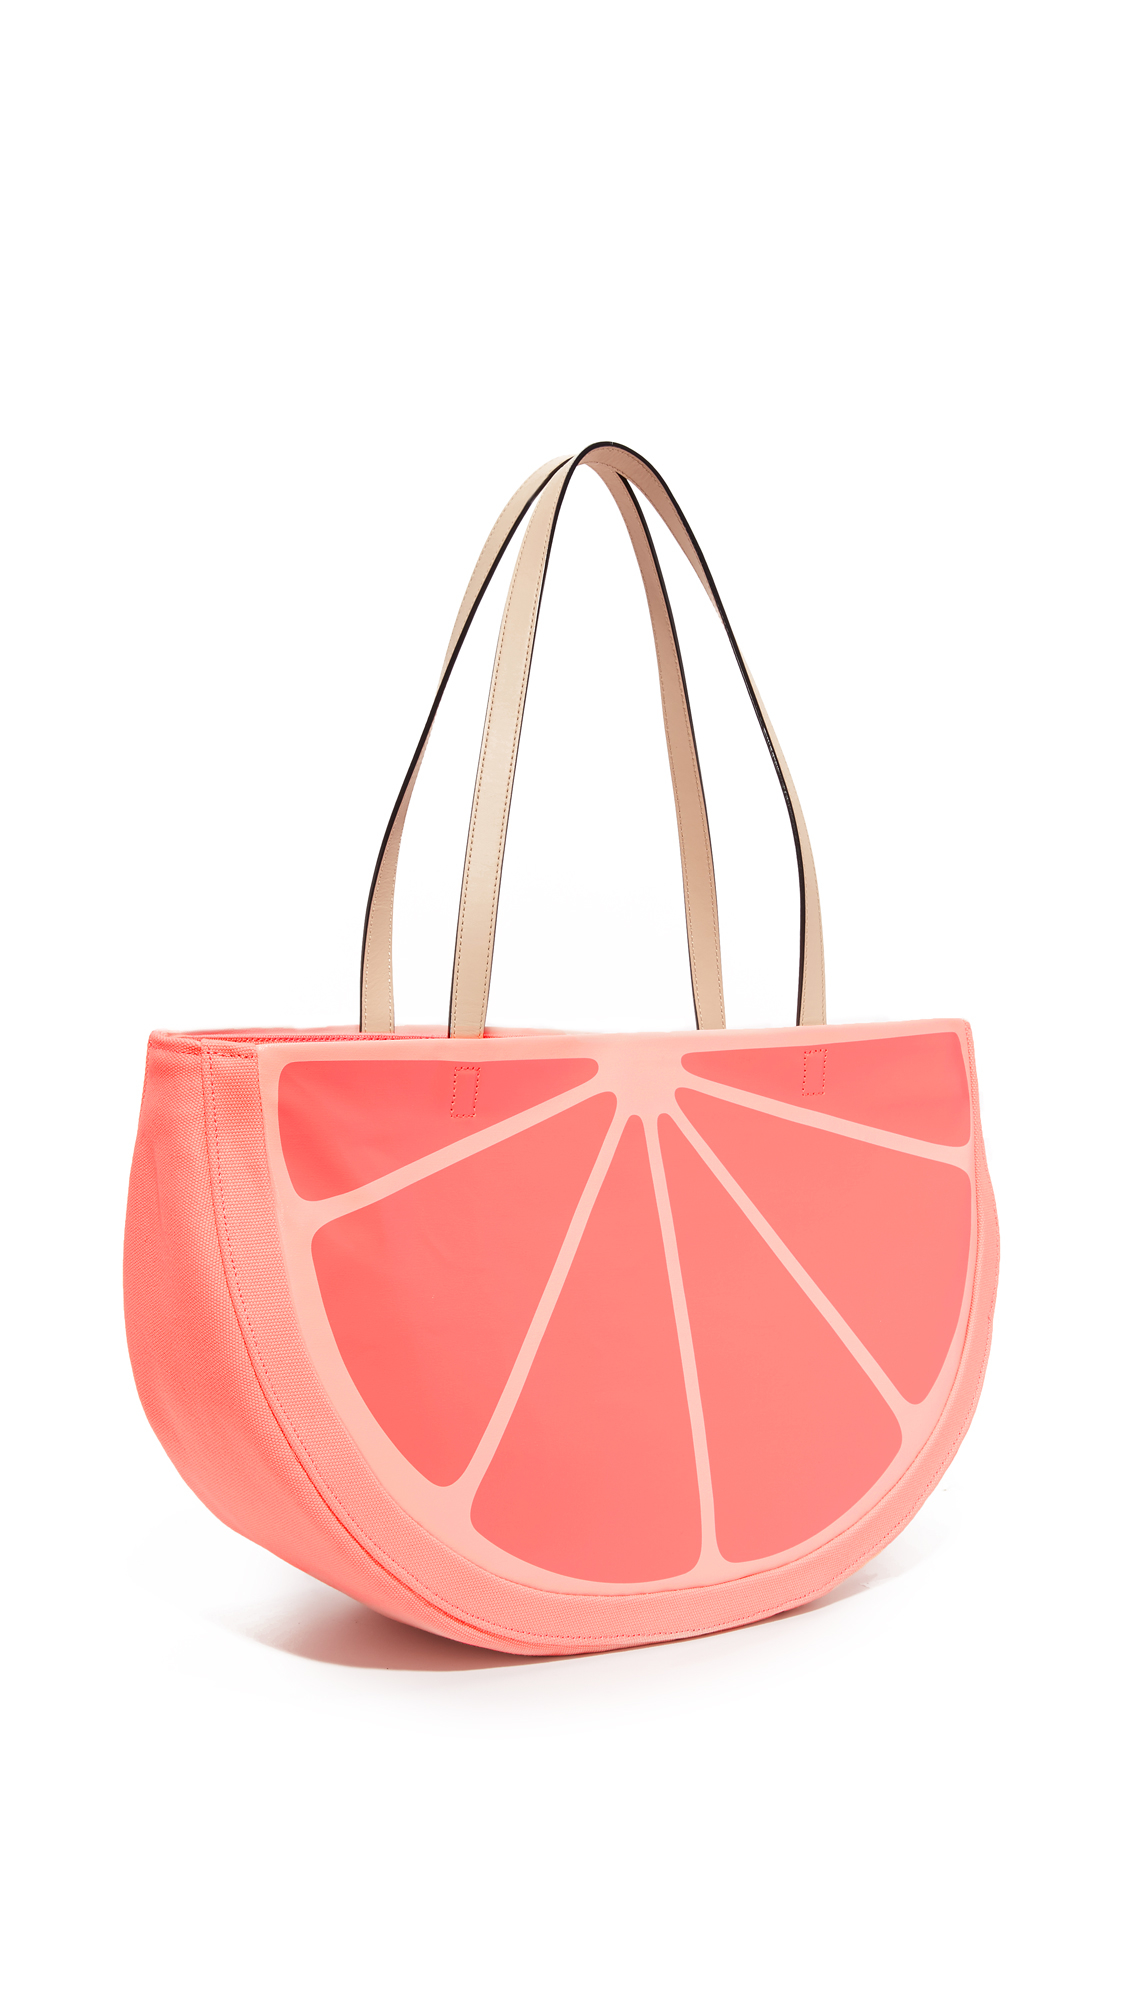 Kate Spade Canvas Grapefruit Tote in Blue